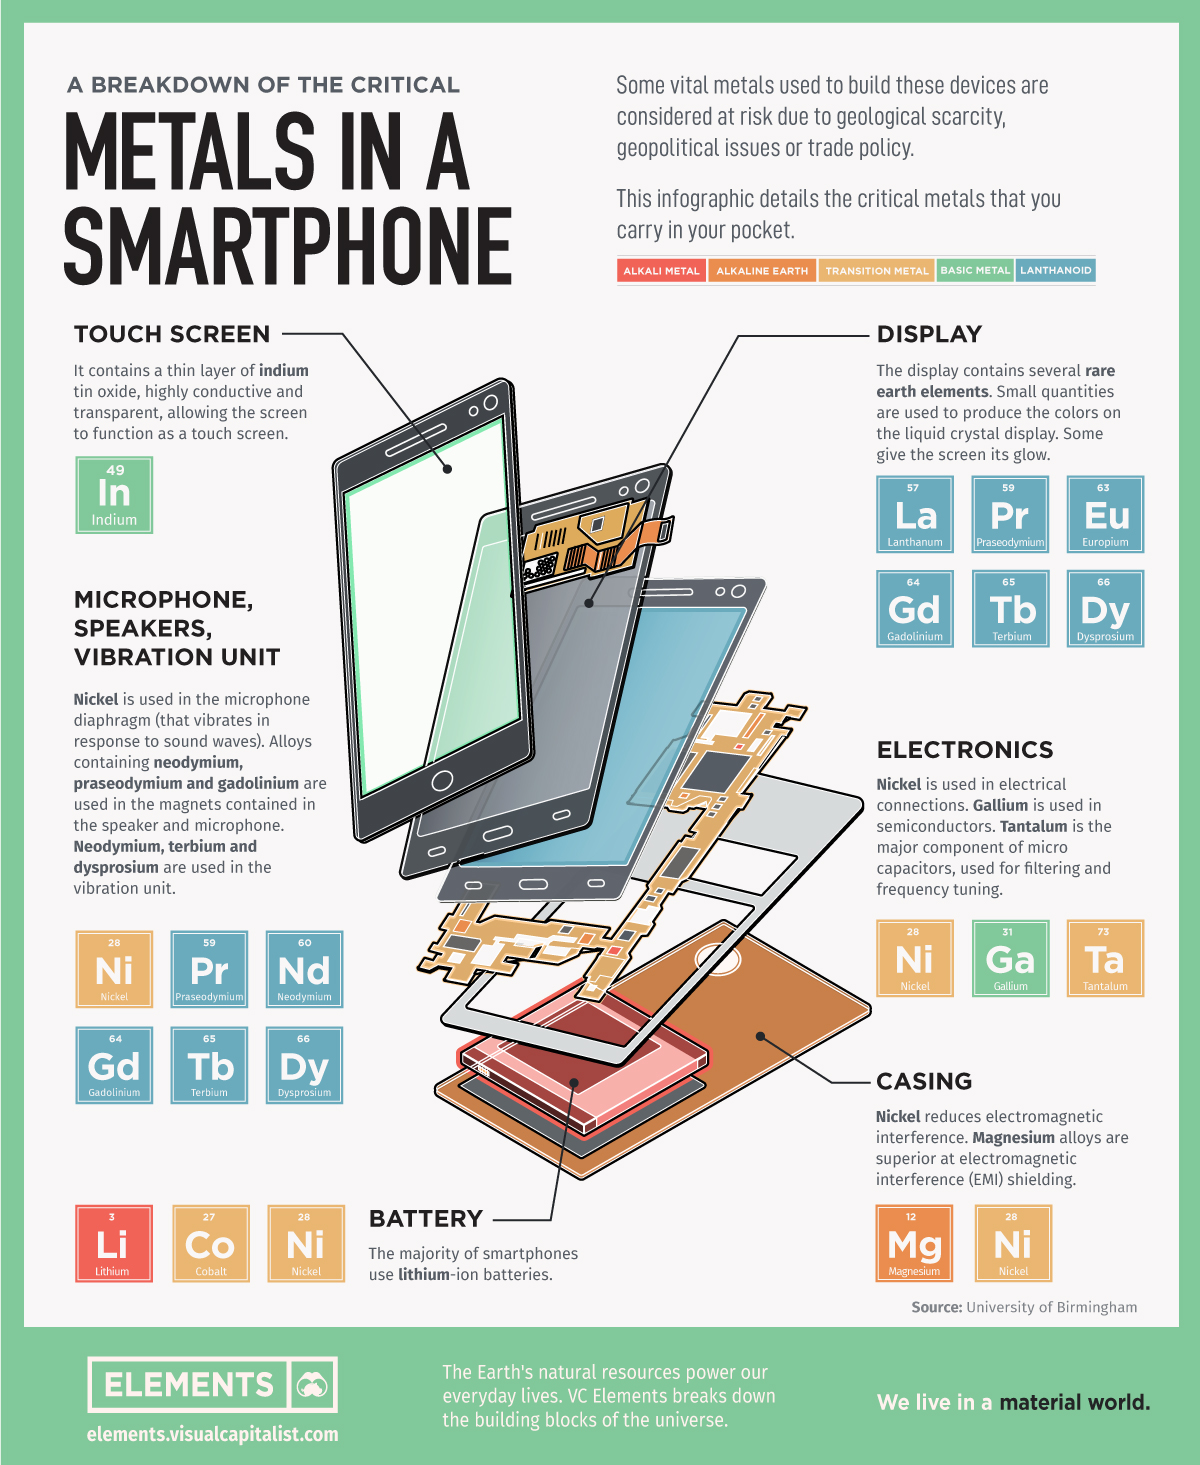 A Breakdown of the Critical Metals in a Smartphone